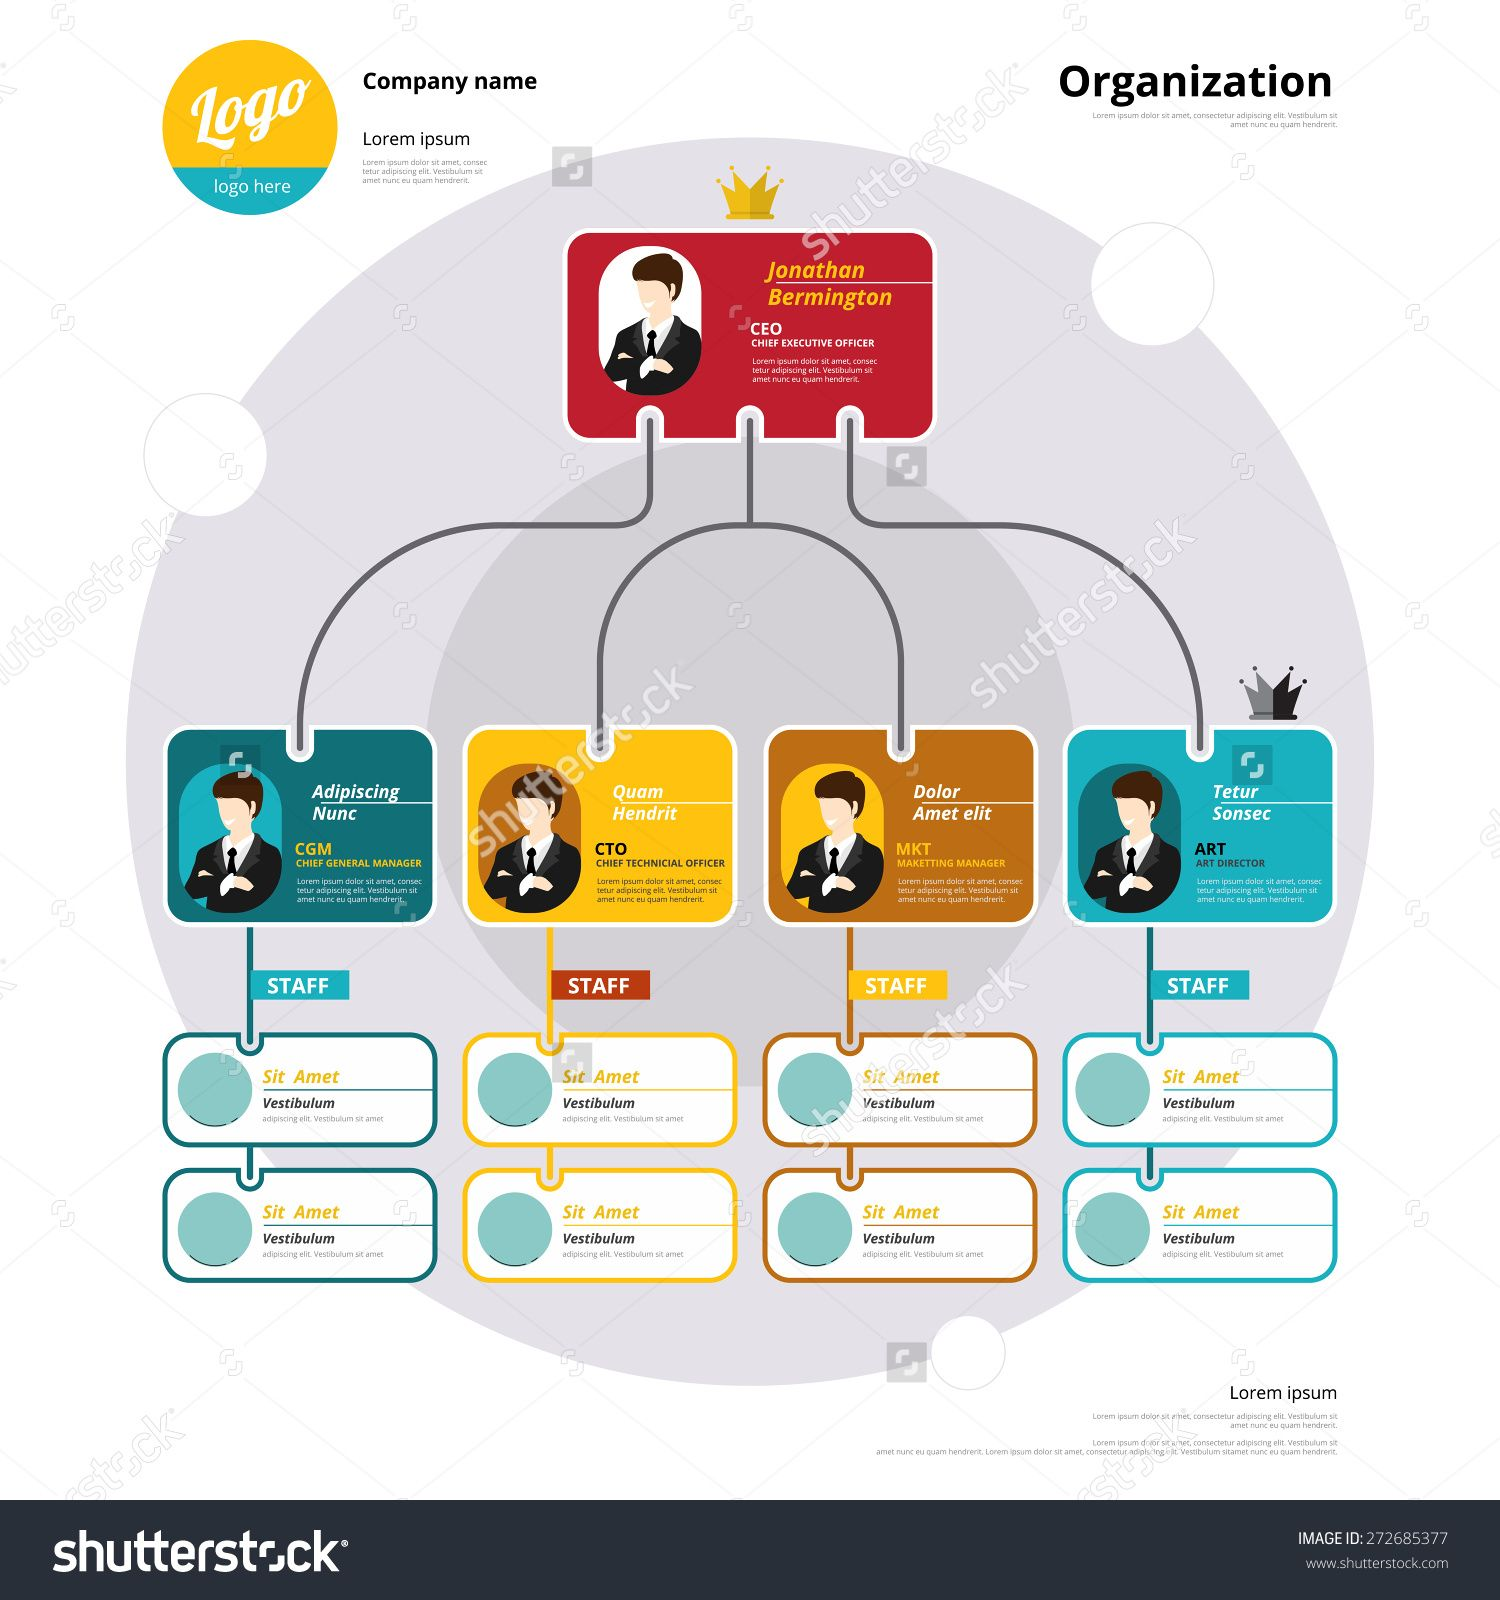 Organization Chart Coporate Structure Flow Of Organizational Vector Illustration Organizational Chart Design Organization Chart Chart Design